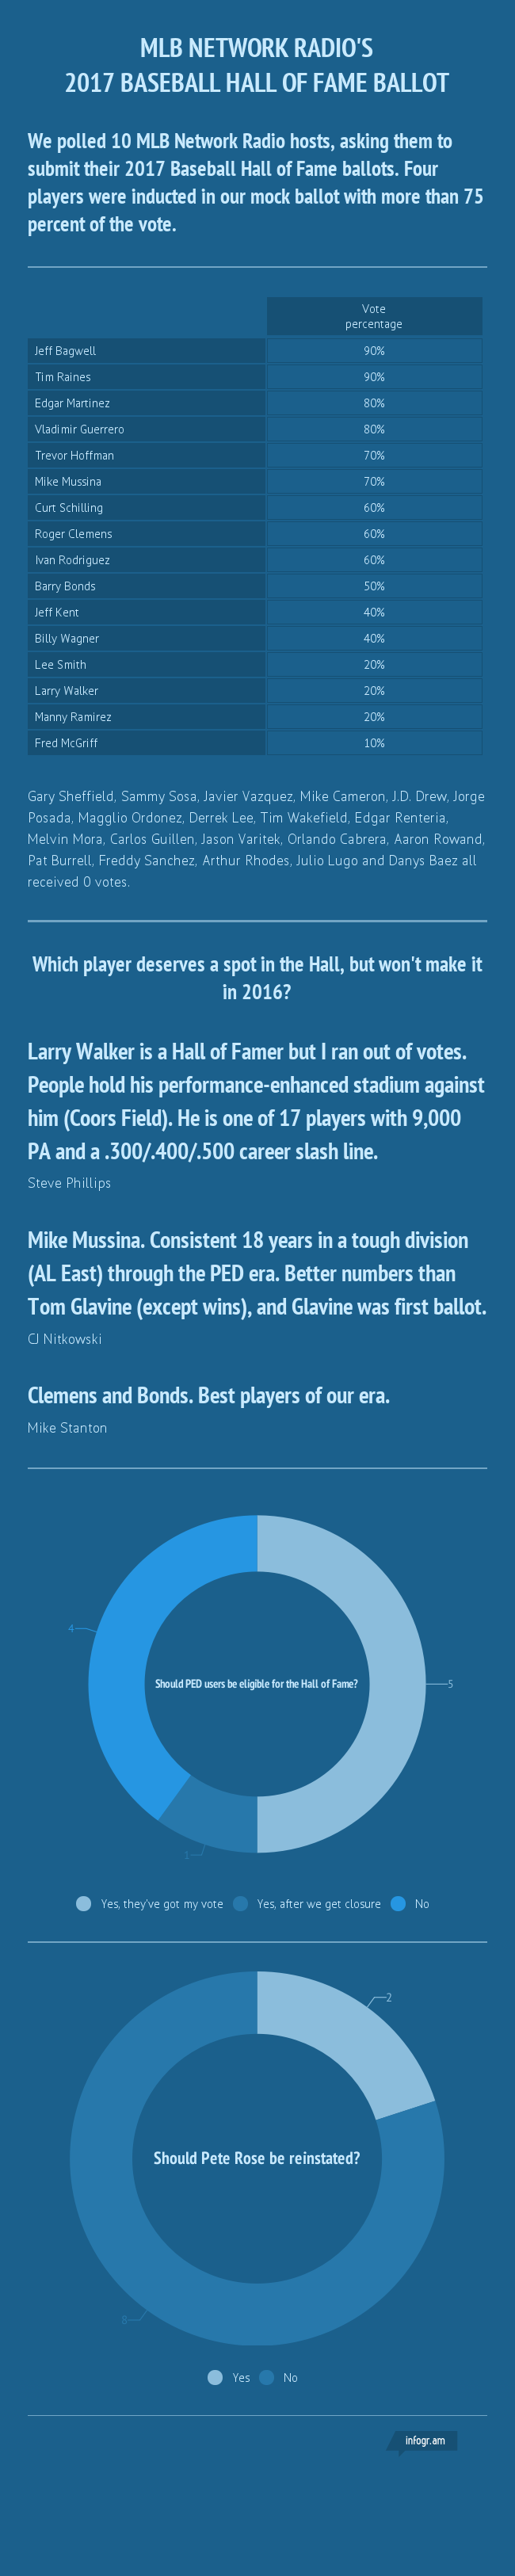 MLB_Network_Radio_2017_Hall_of_Fame_ballot